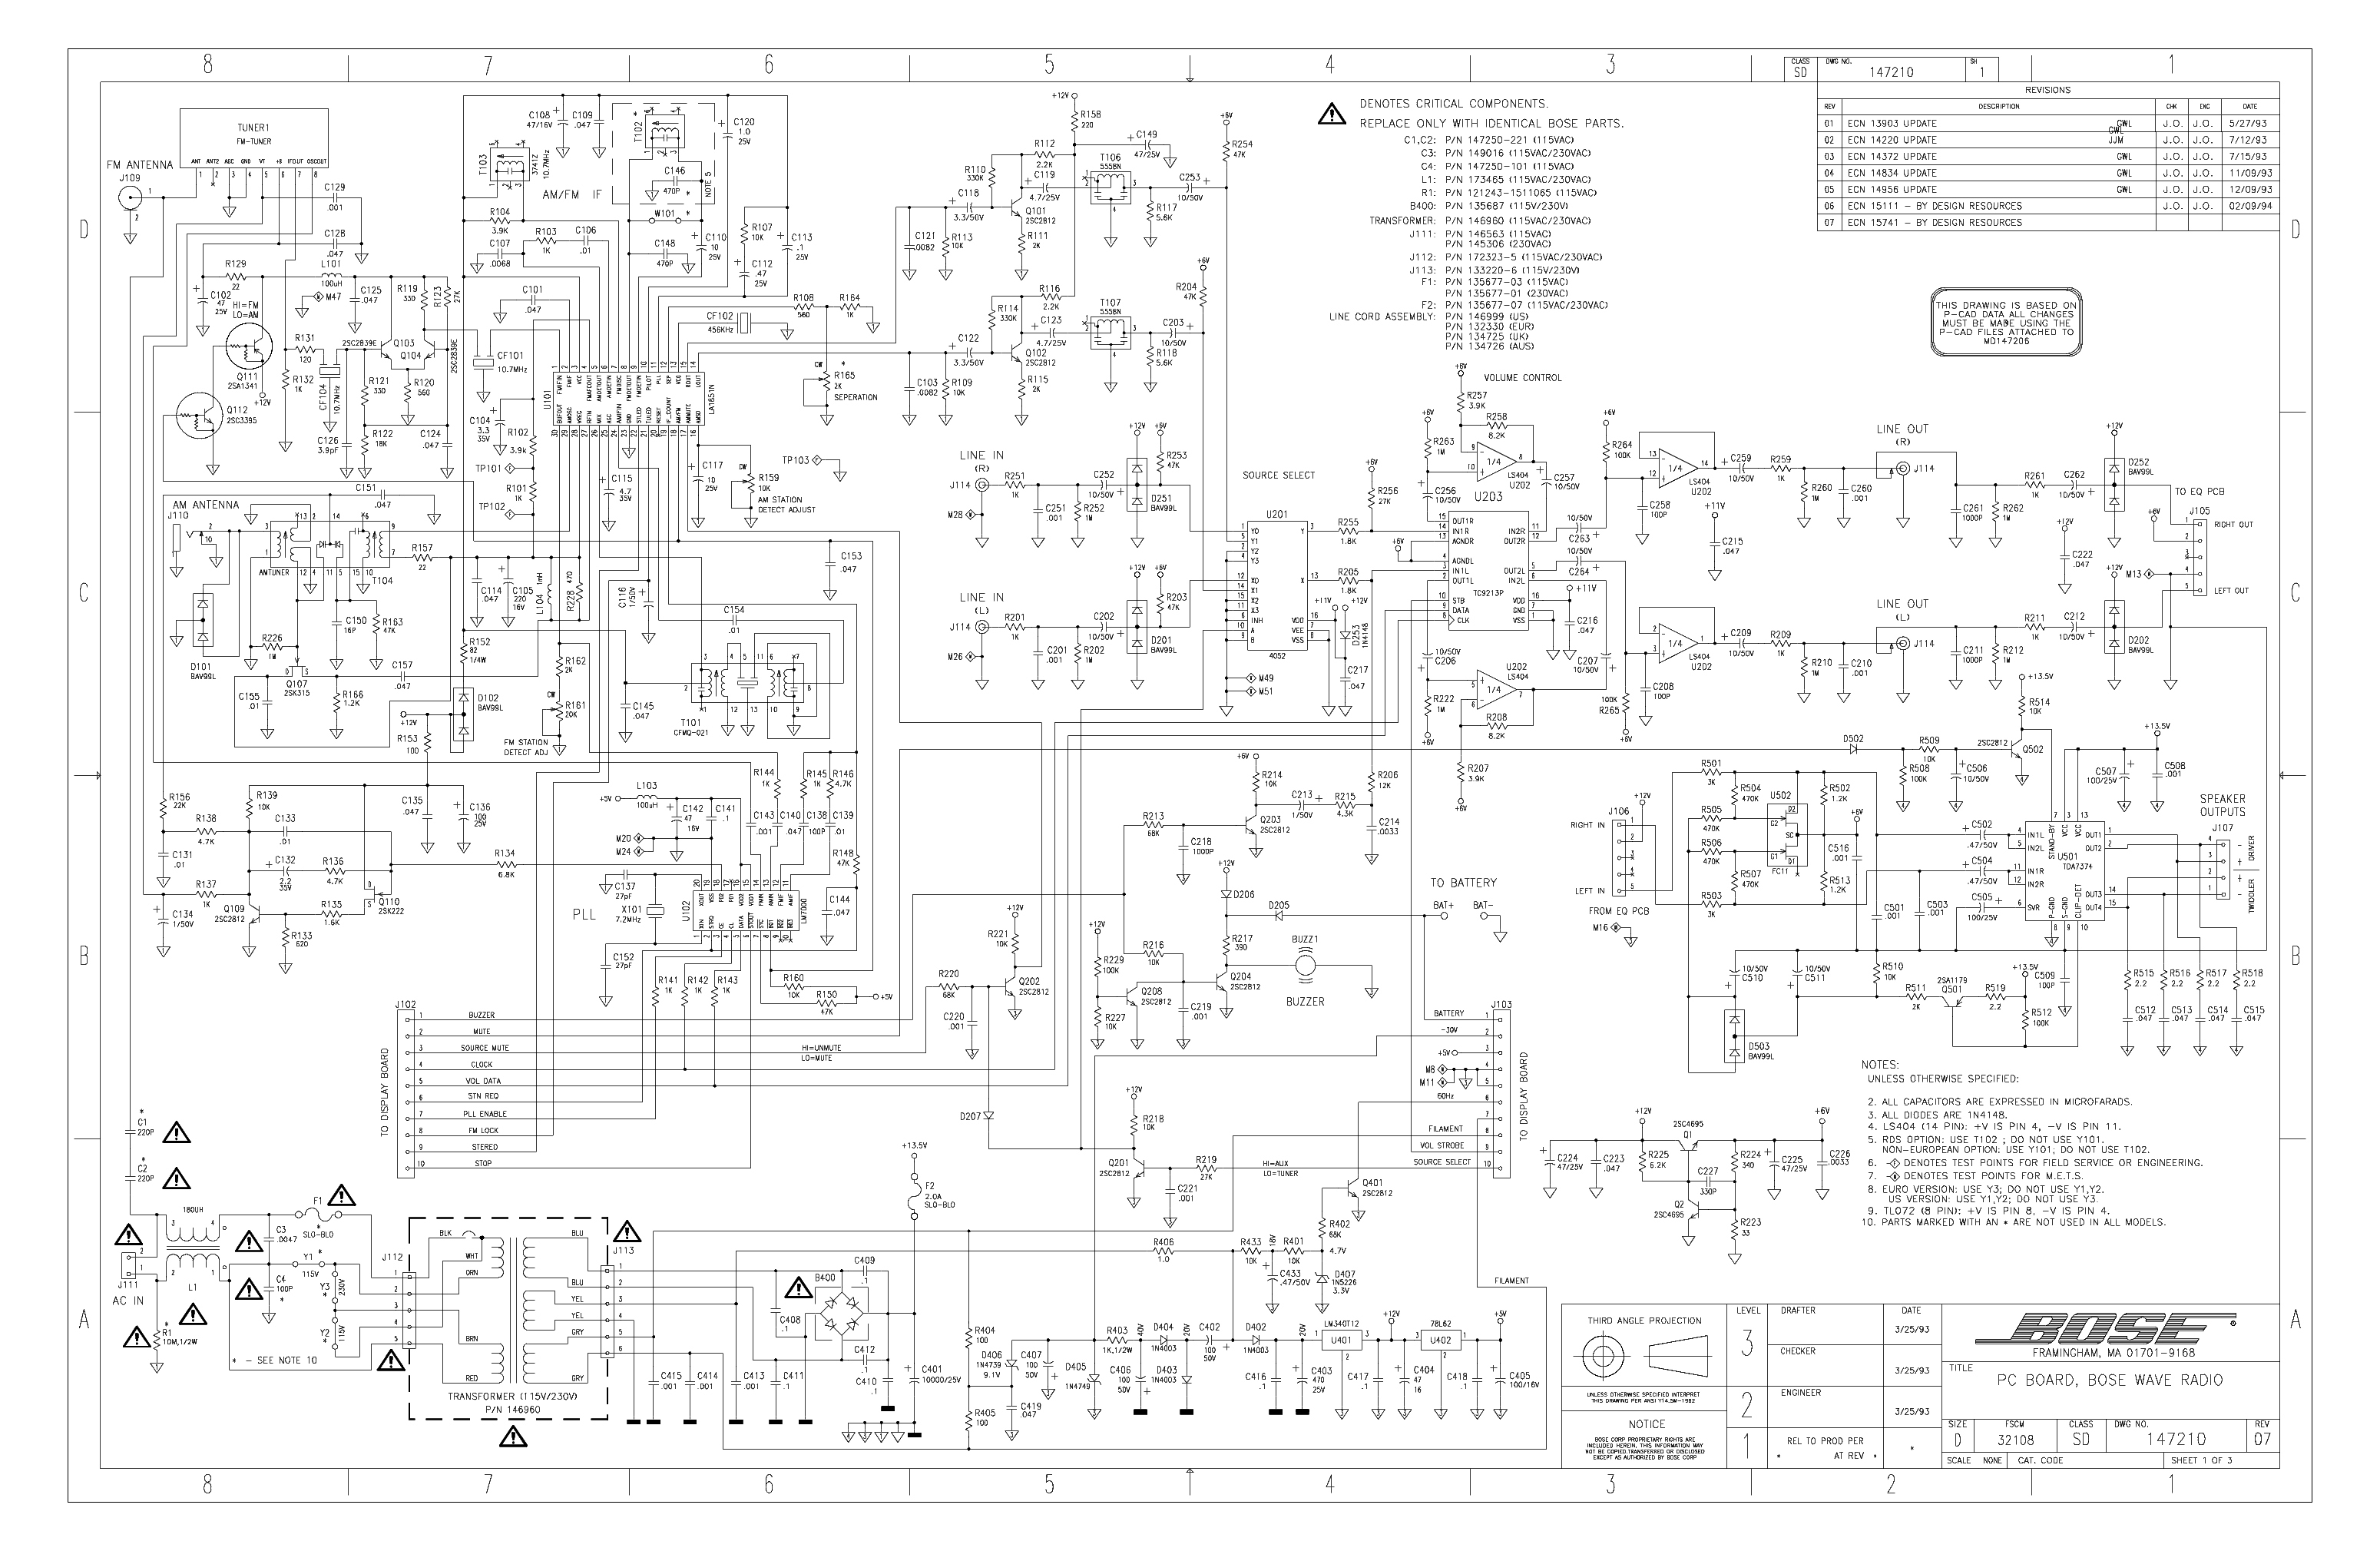 wiring schematic for bose stereo